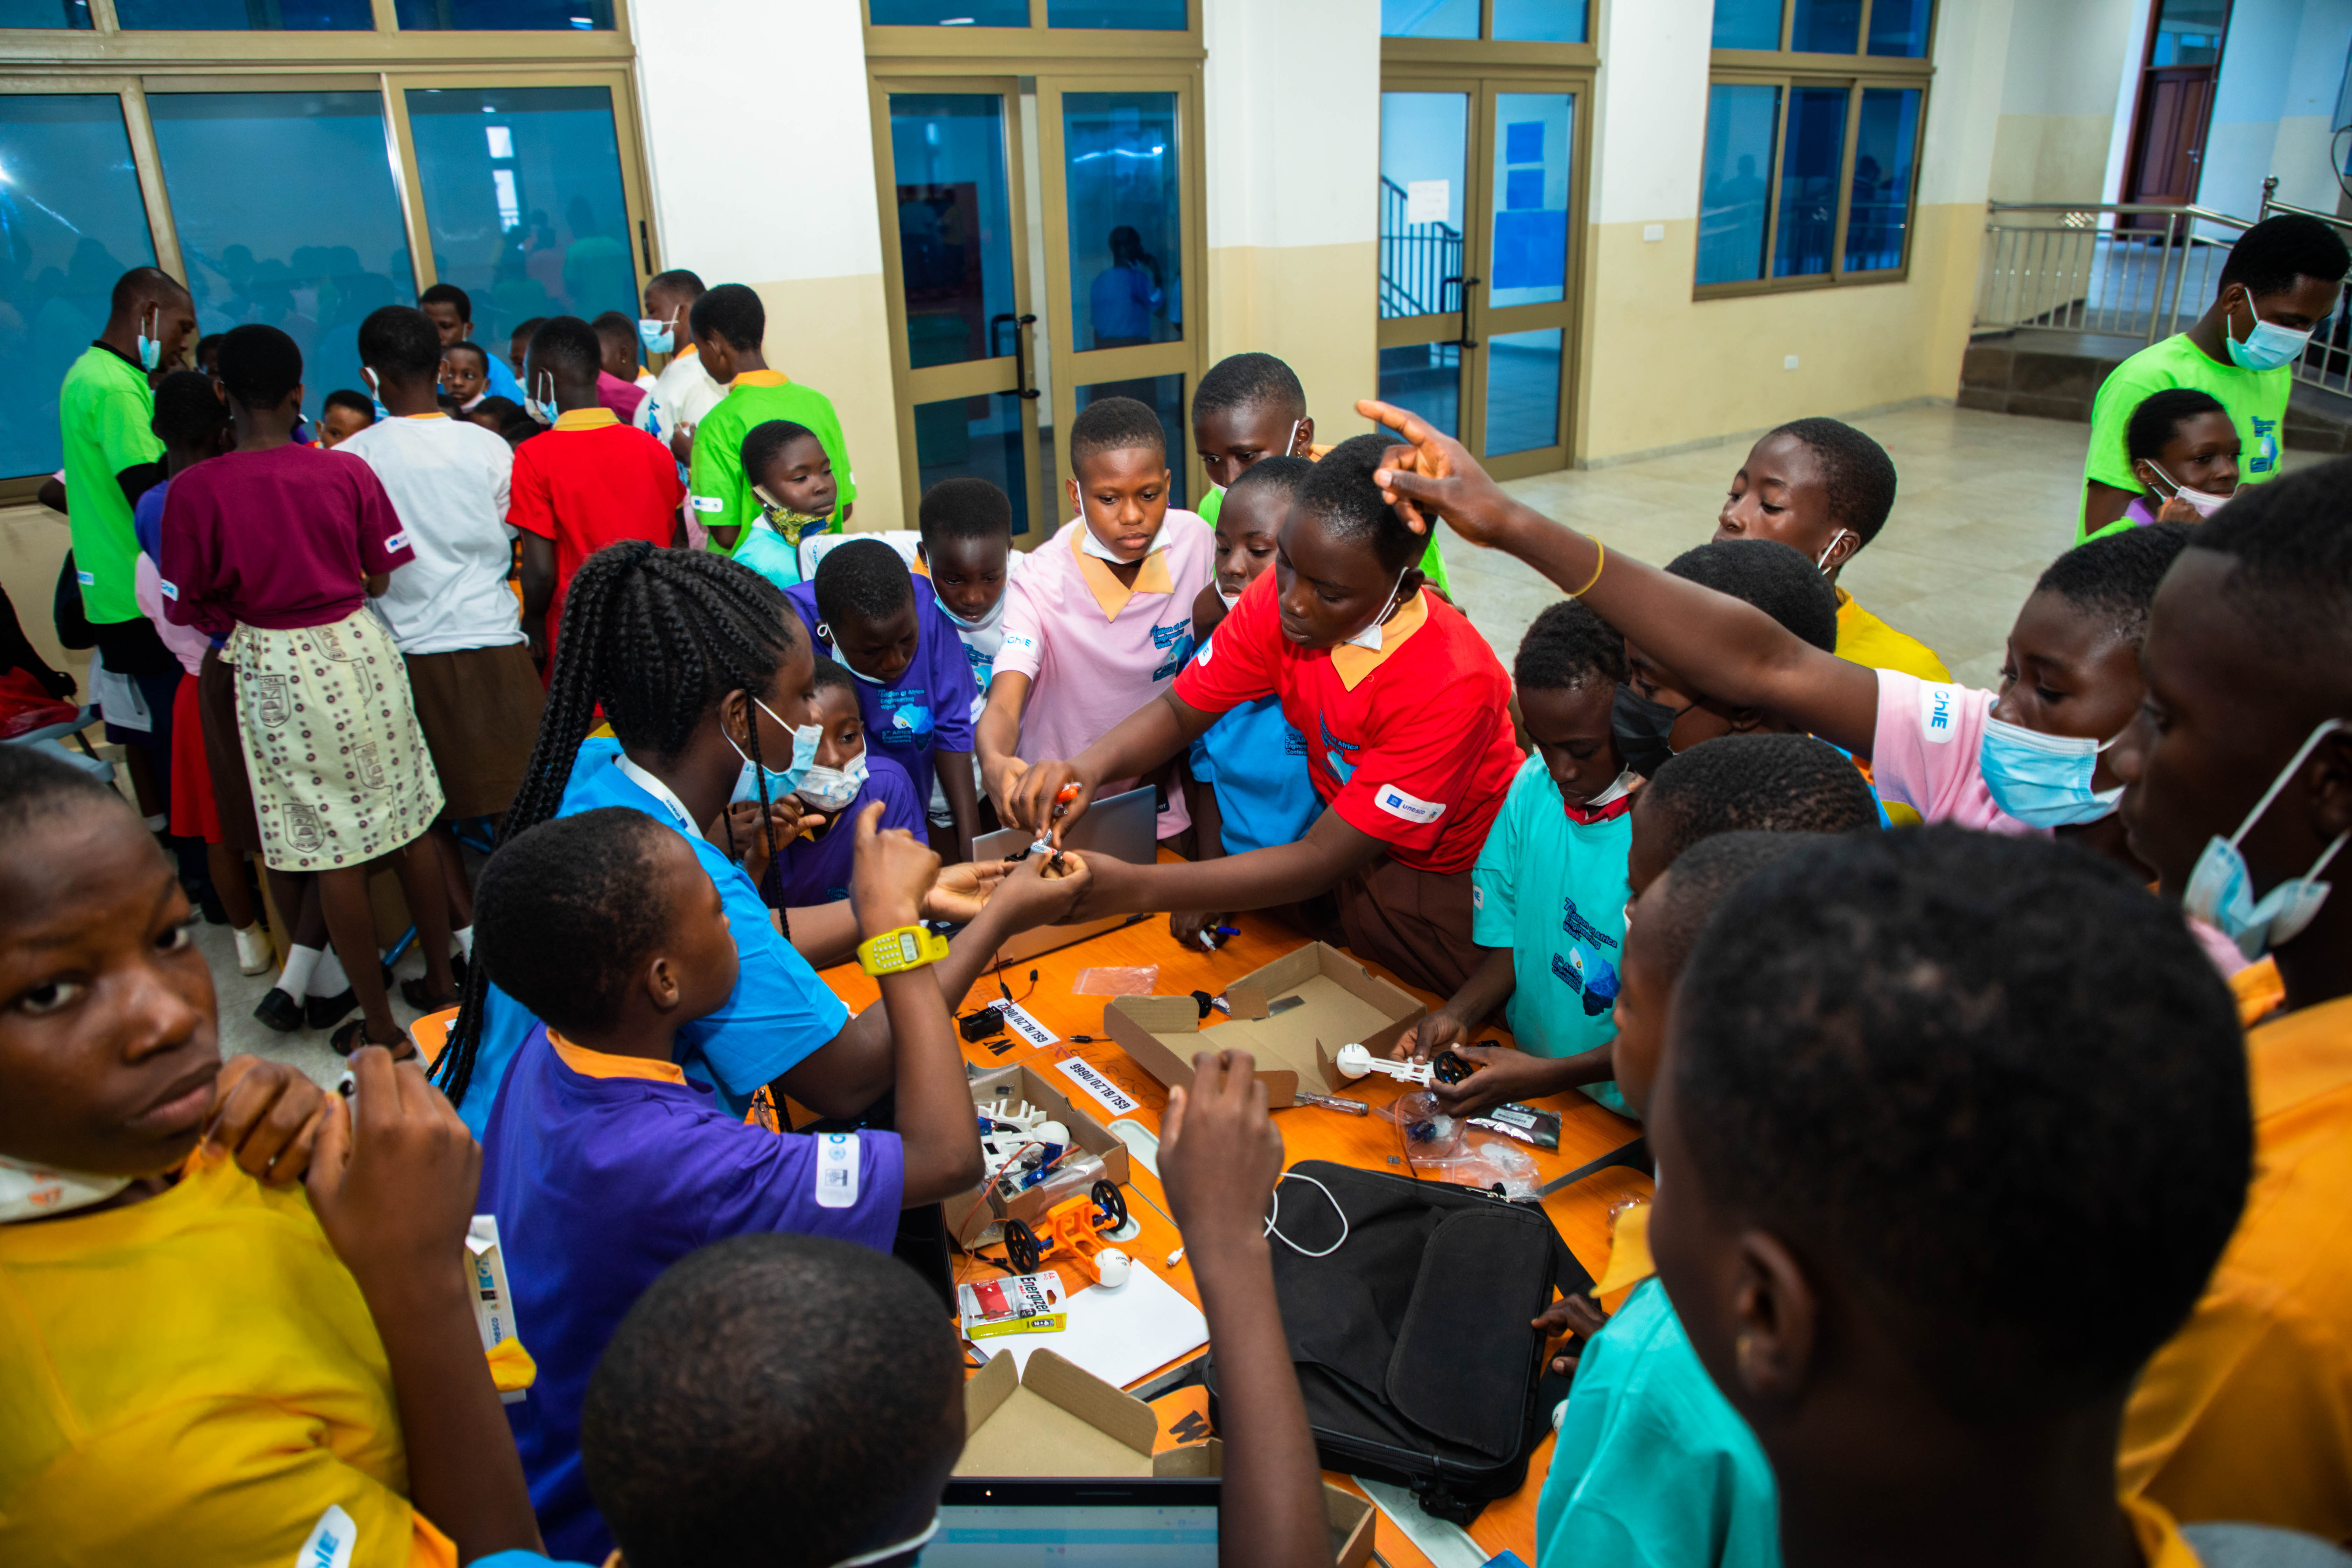 UNESCO supports AI and Robotics Session for 245 young students at 7th African Engineering Week in Ghana